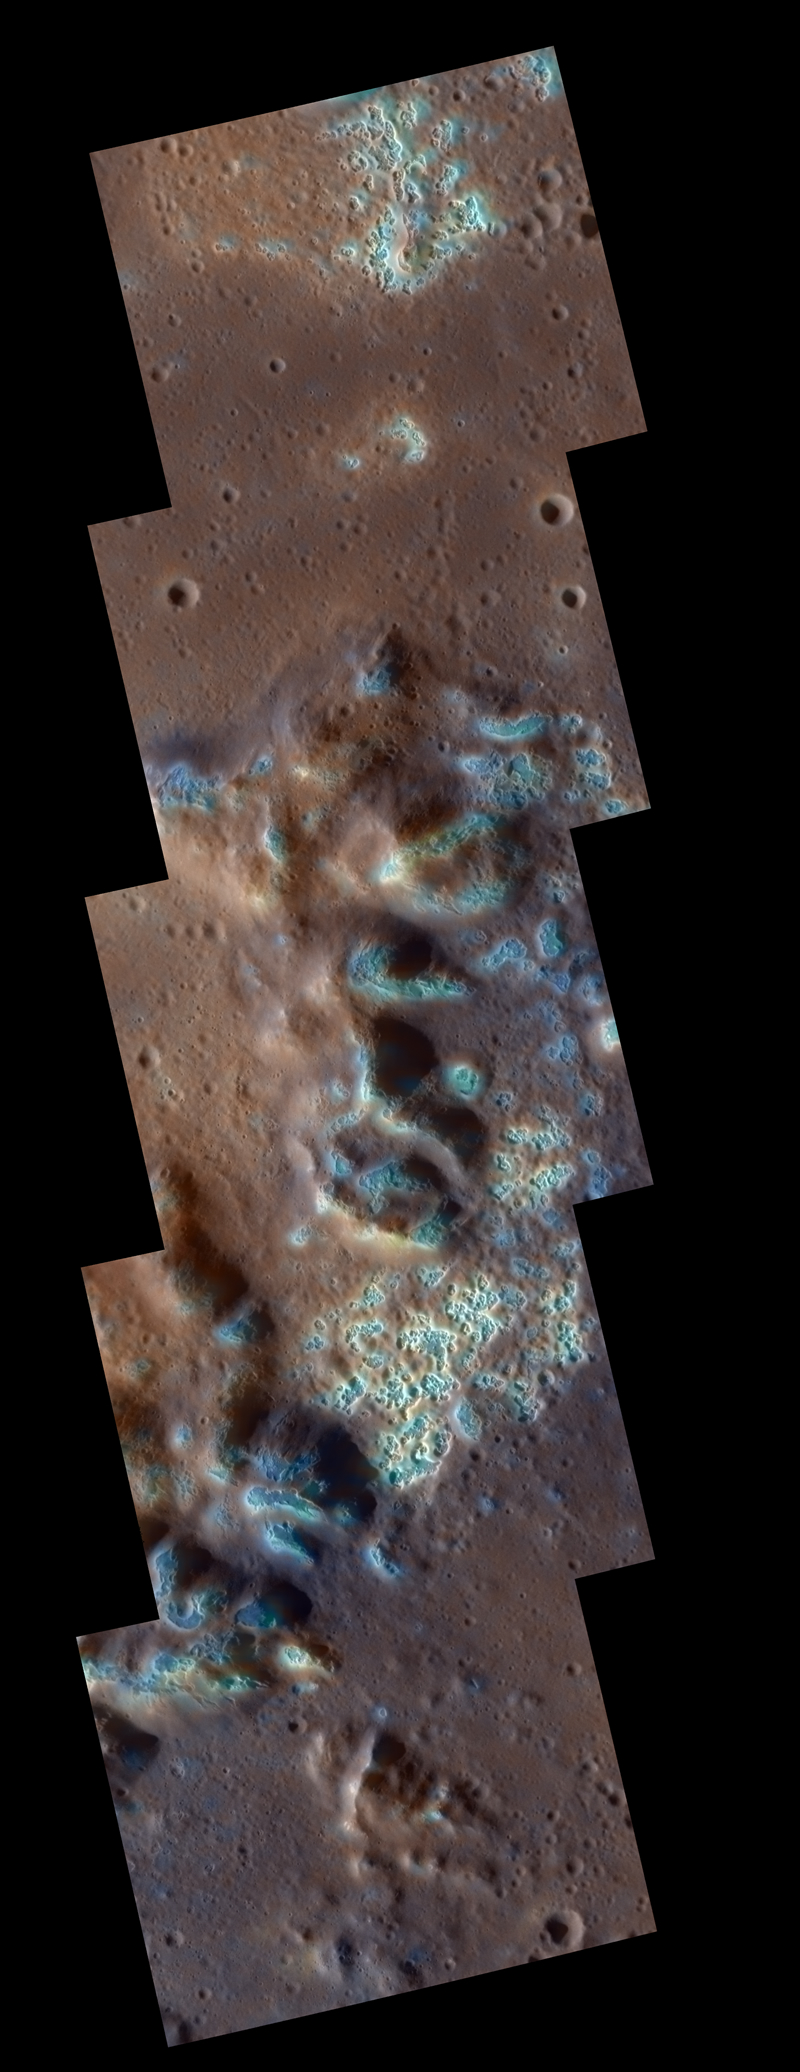 messenger spacecraft mercury discoveries - photo #19